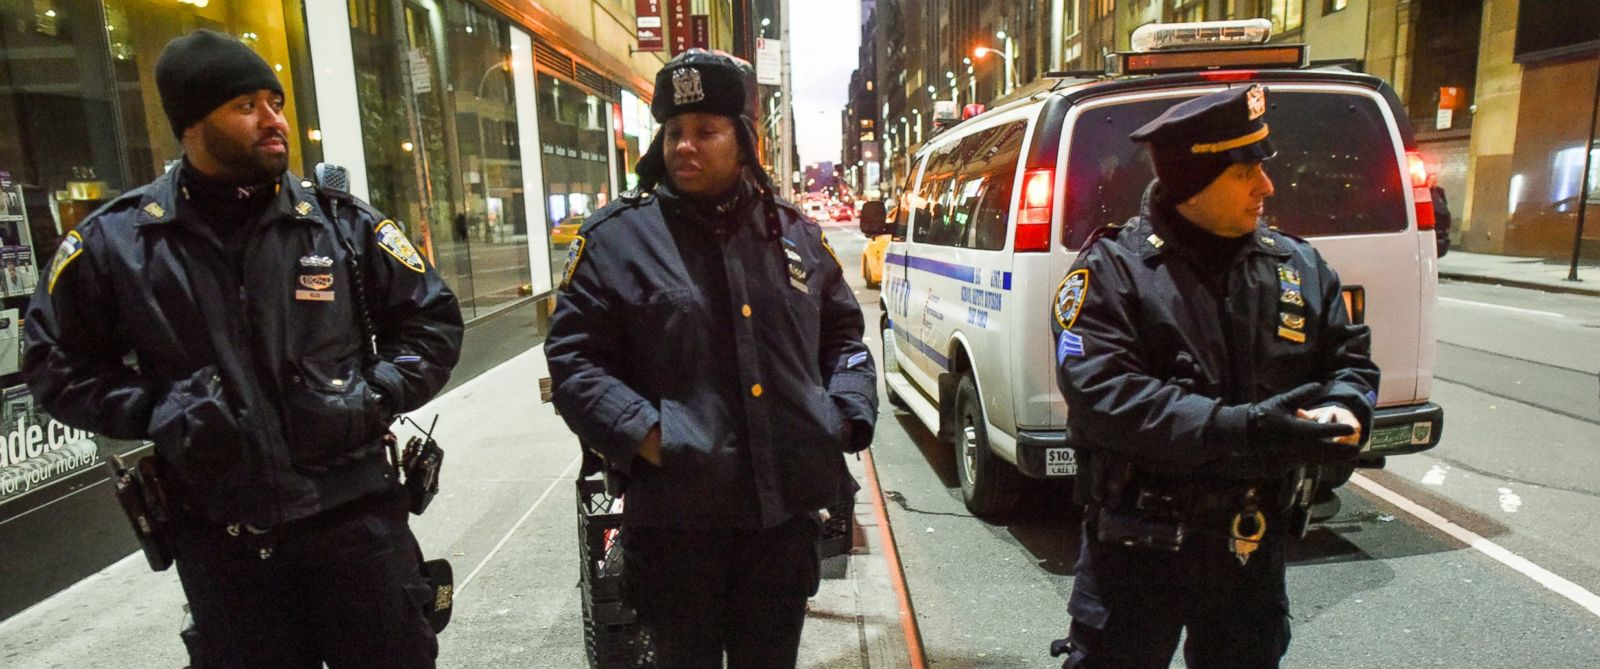 PHOTO: Officers of the New York Police Department stand watch on 42nd Street in Times Square on Dec. 31, 2014 in New York City.